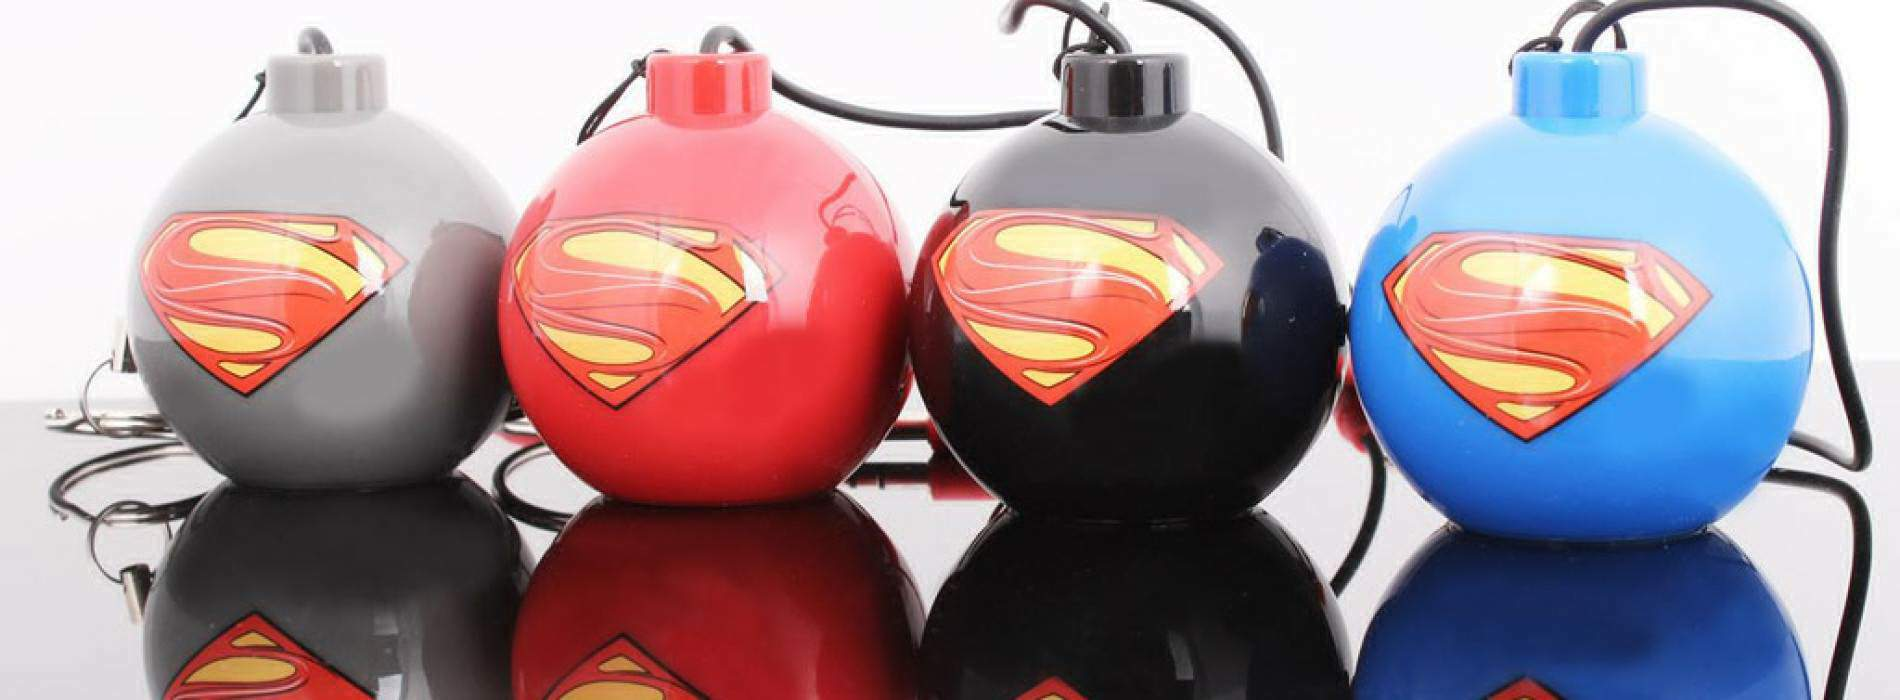 Mini altavoces bomba de Superman